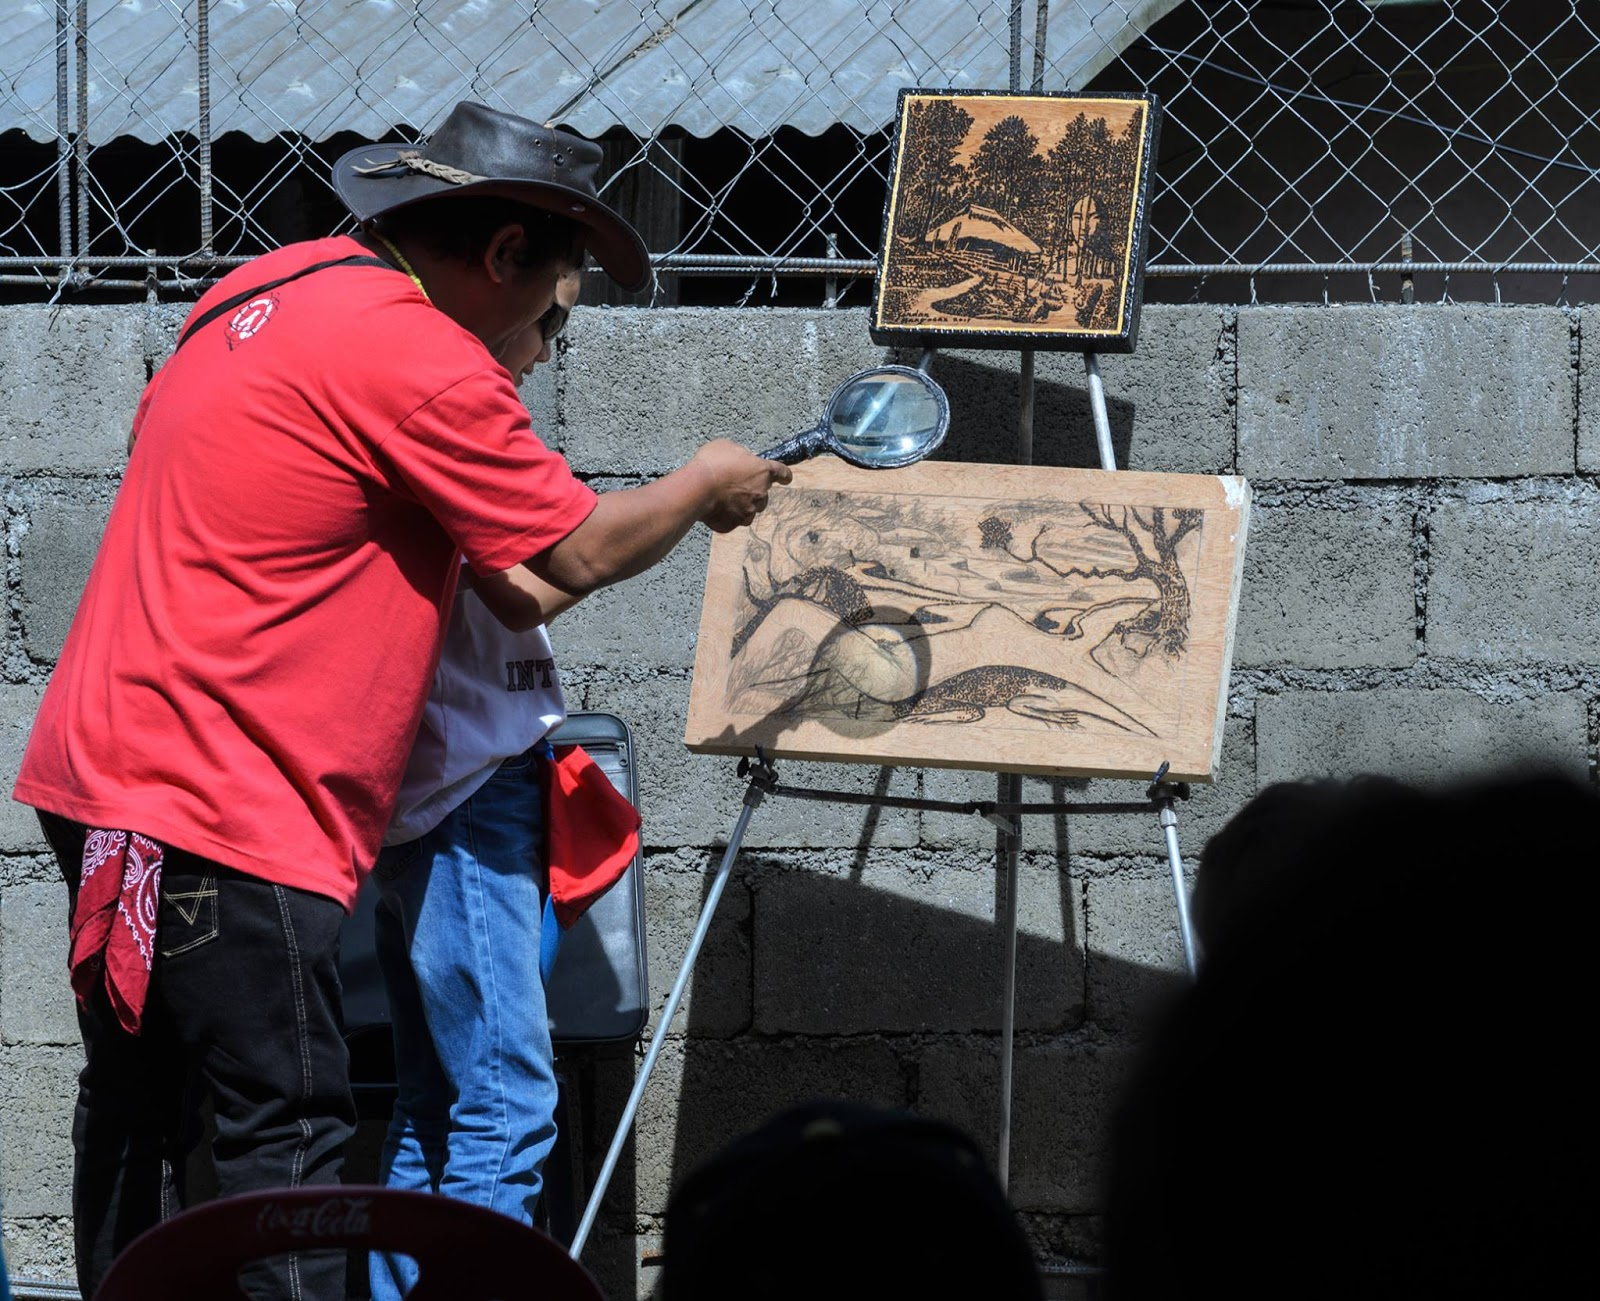 International Arts Festival 8th Tam-awan Baguio City Philippines Solar Sun Painting by Jordan Mang-Osan with a another workshop youth volunteered being shown how to solar paint